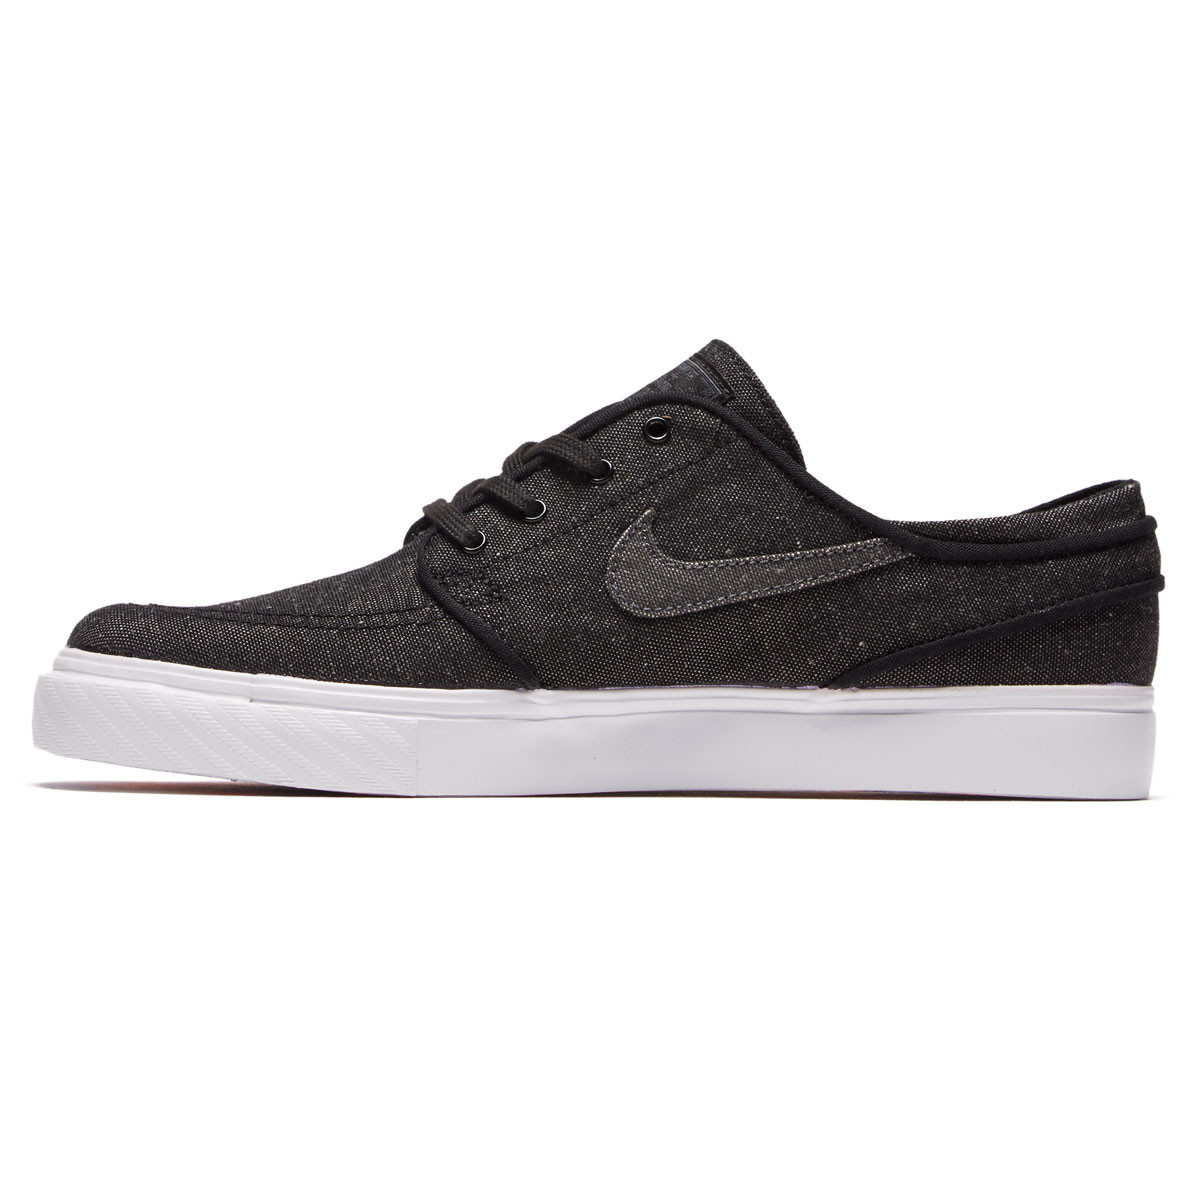 new york 53212 6d73a Nike SB Zoom Stefan Janoski Canvas Deconstructed Shoes - Black Anthracite  White Hyper Royal